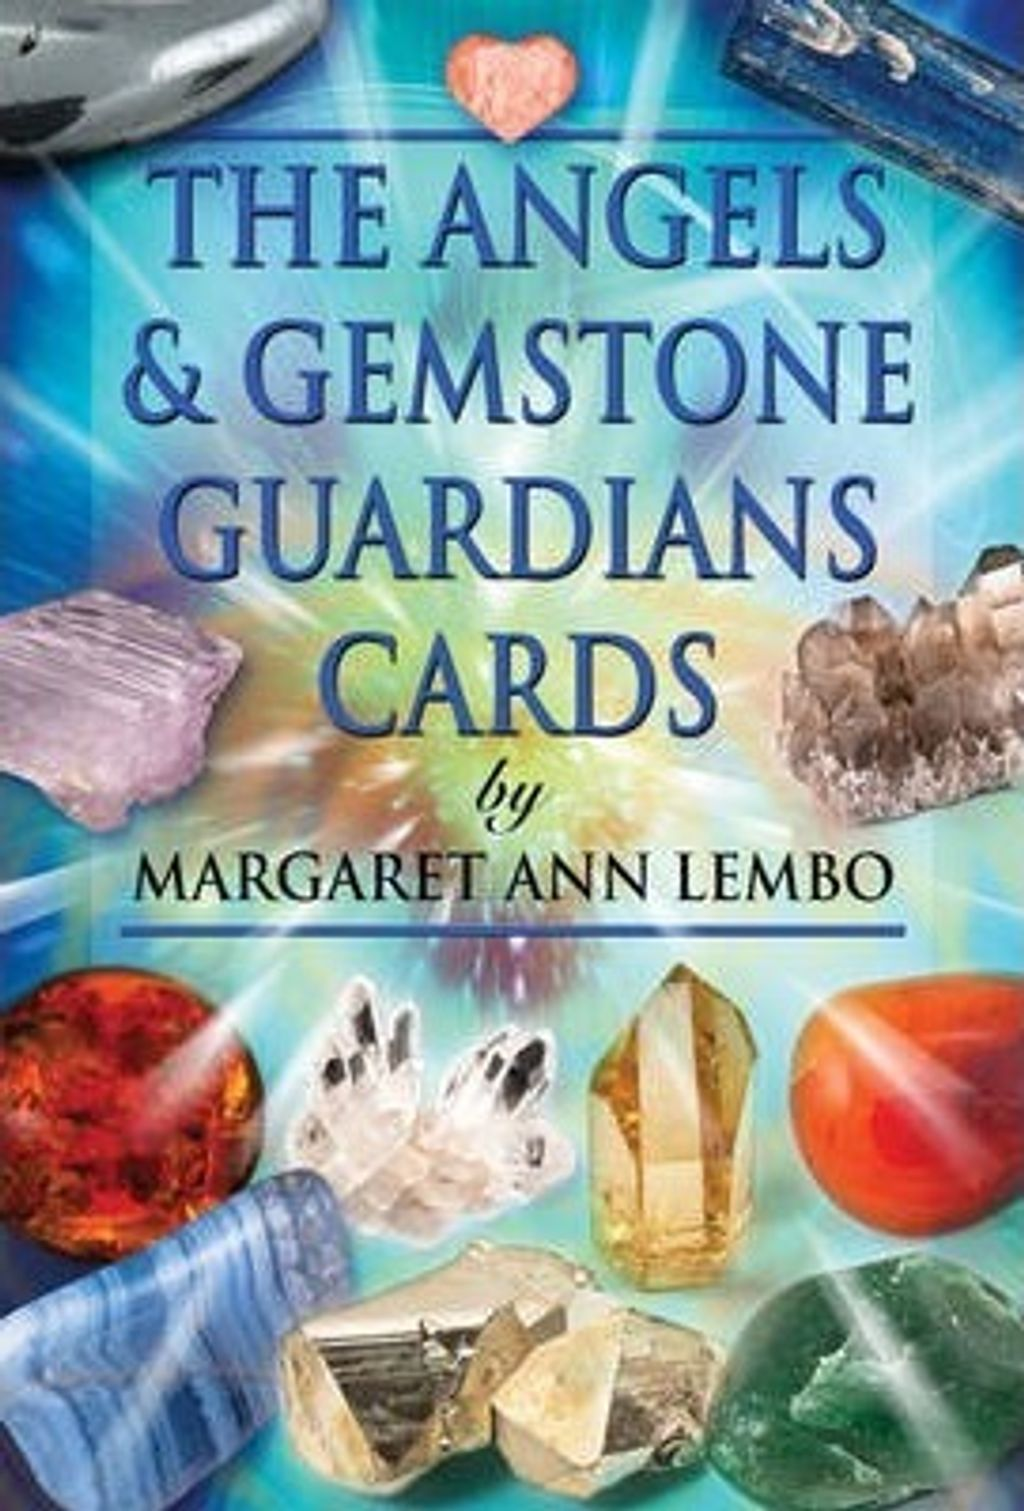 The Angels and Gemstone Guardians Cards3.jpg